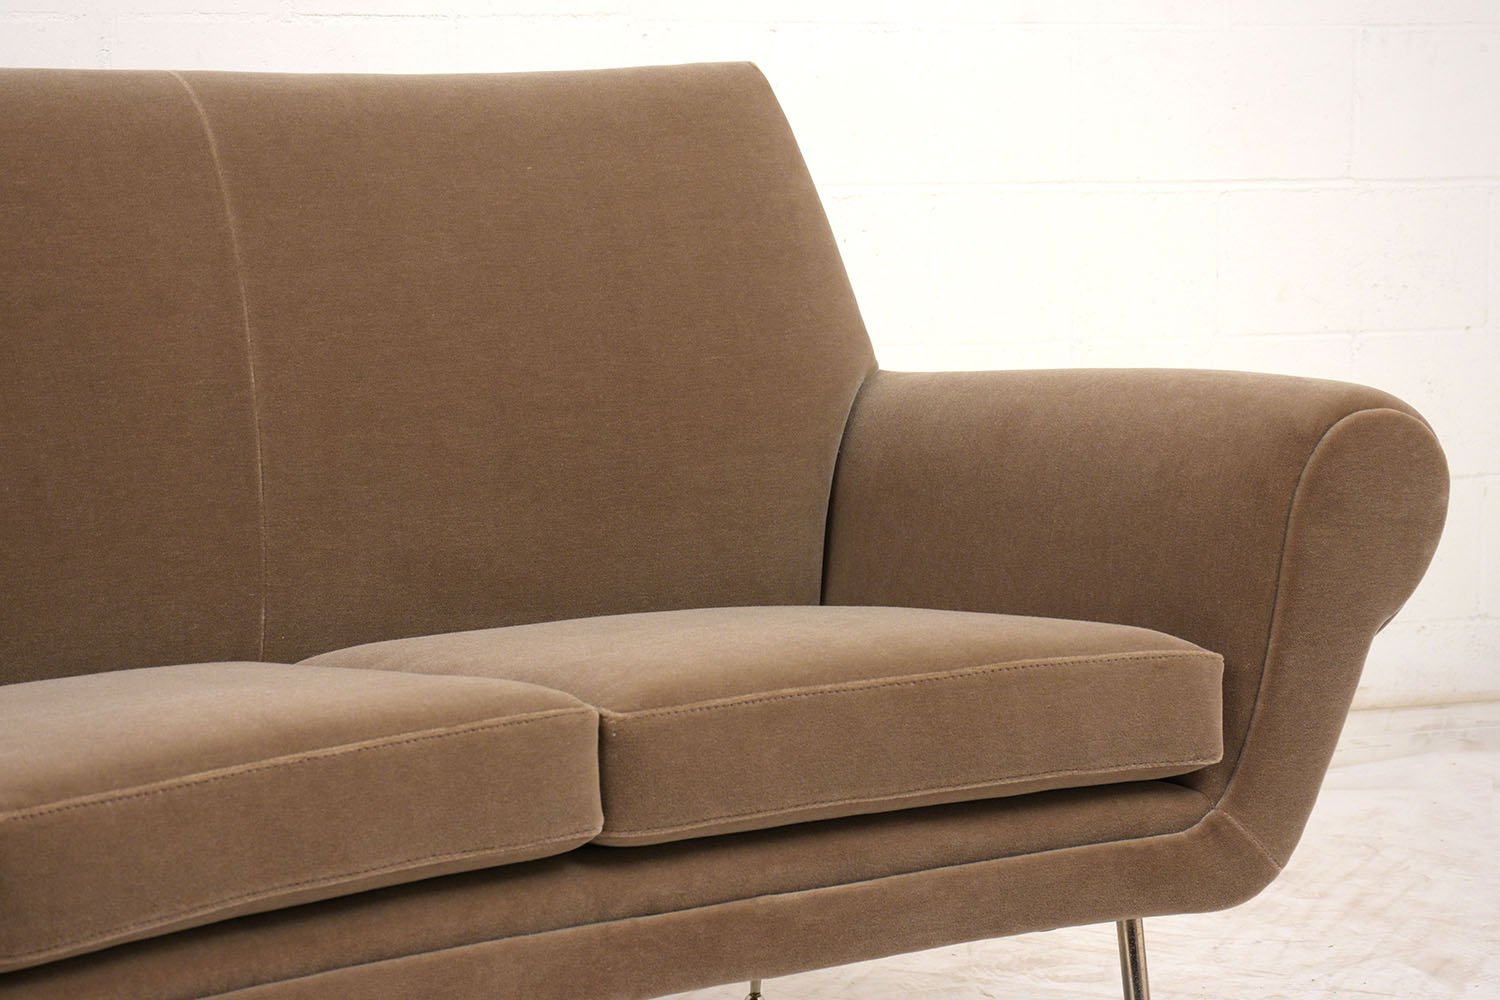 italian modern sofas uk and chairs argos 3 seater curved sofa 1960s for sale at pamono